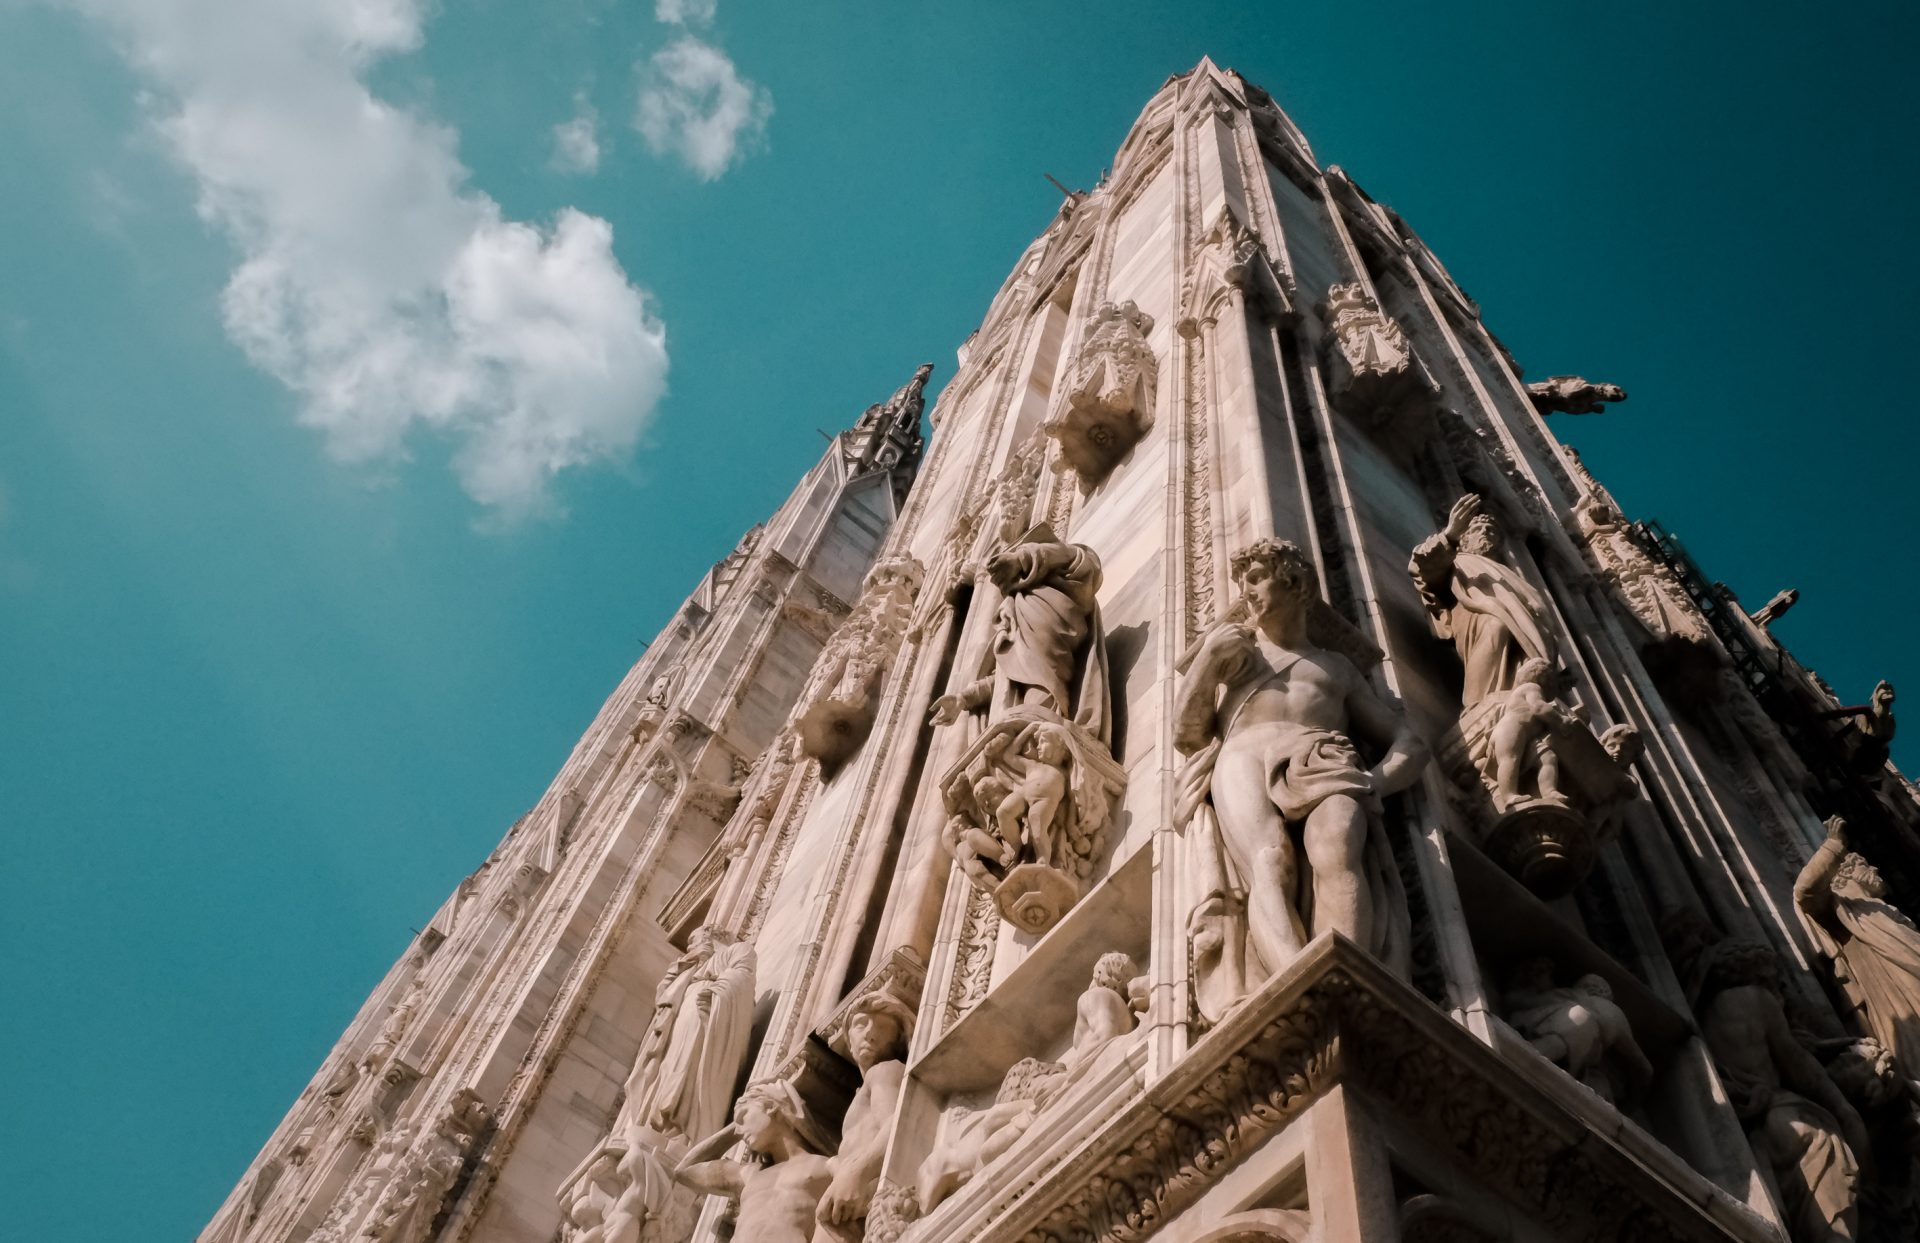 The amazing facade of the Duomo Cathedral statues italy milan photo by Jo Kassis